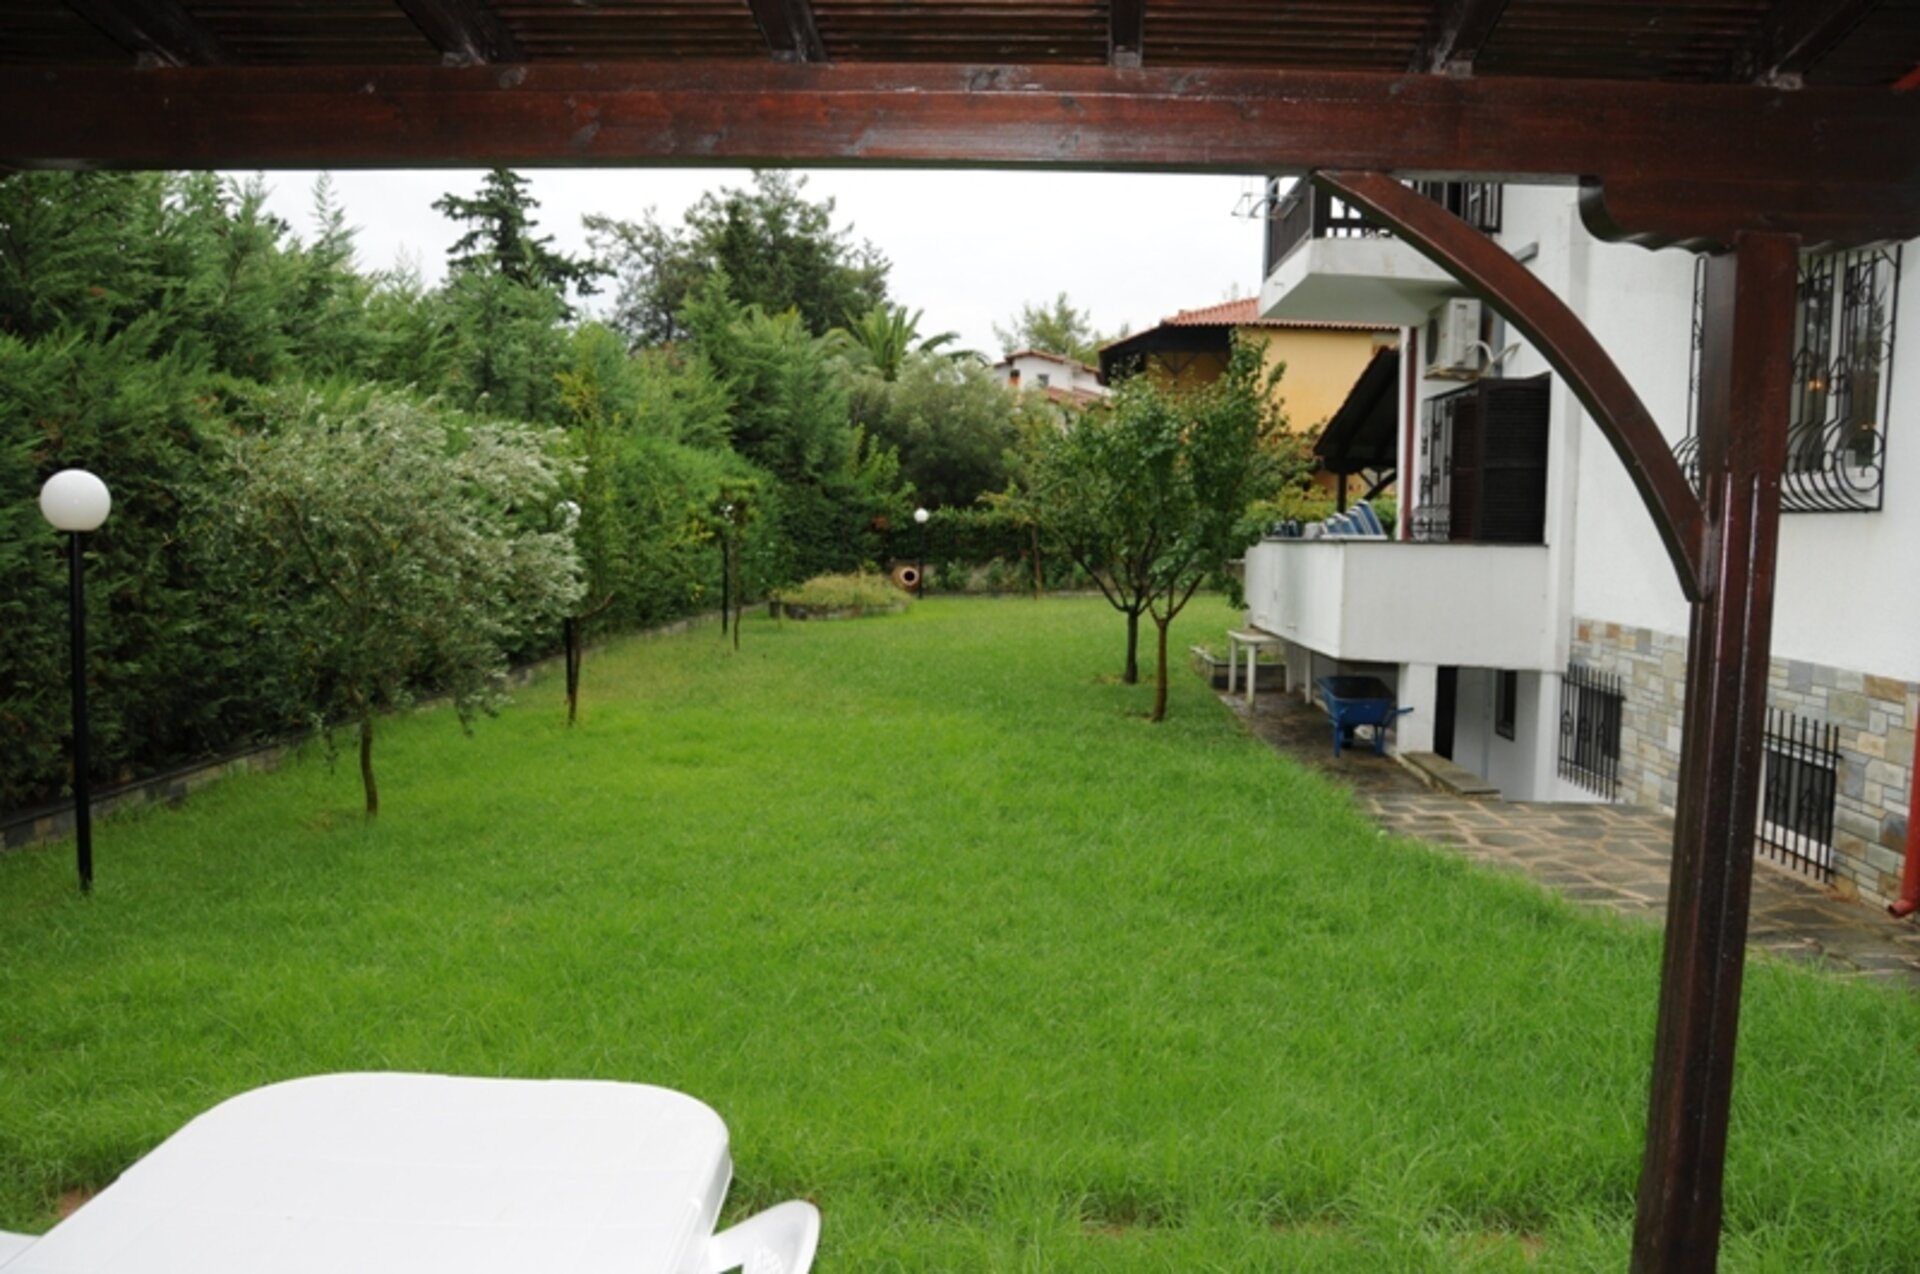 6 bedroom Detached house  in Polichrono  RE0194